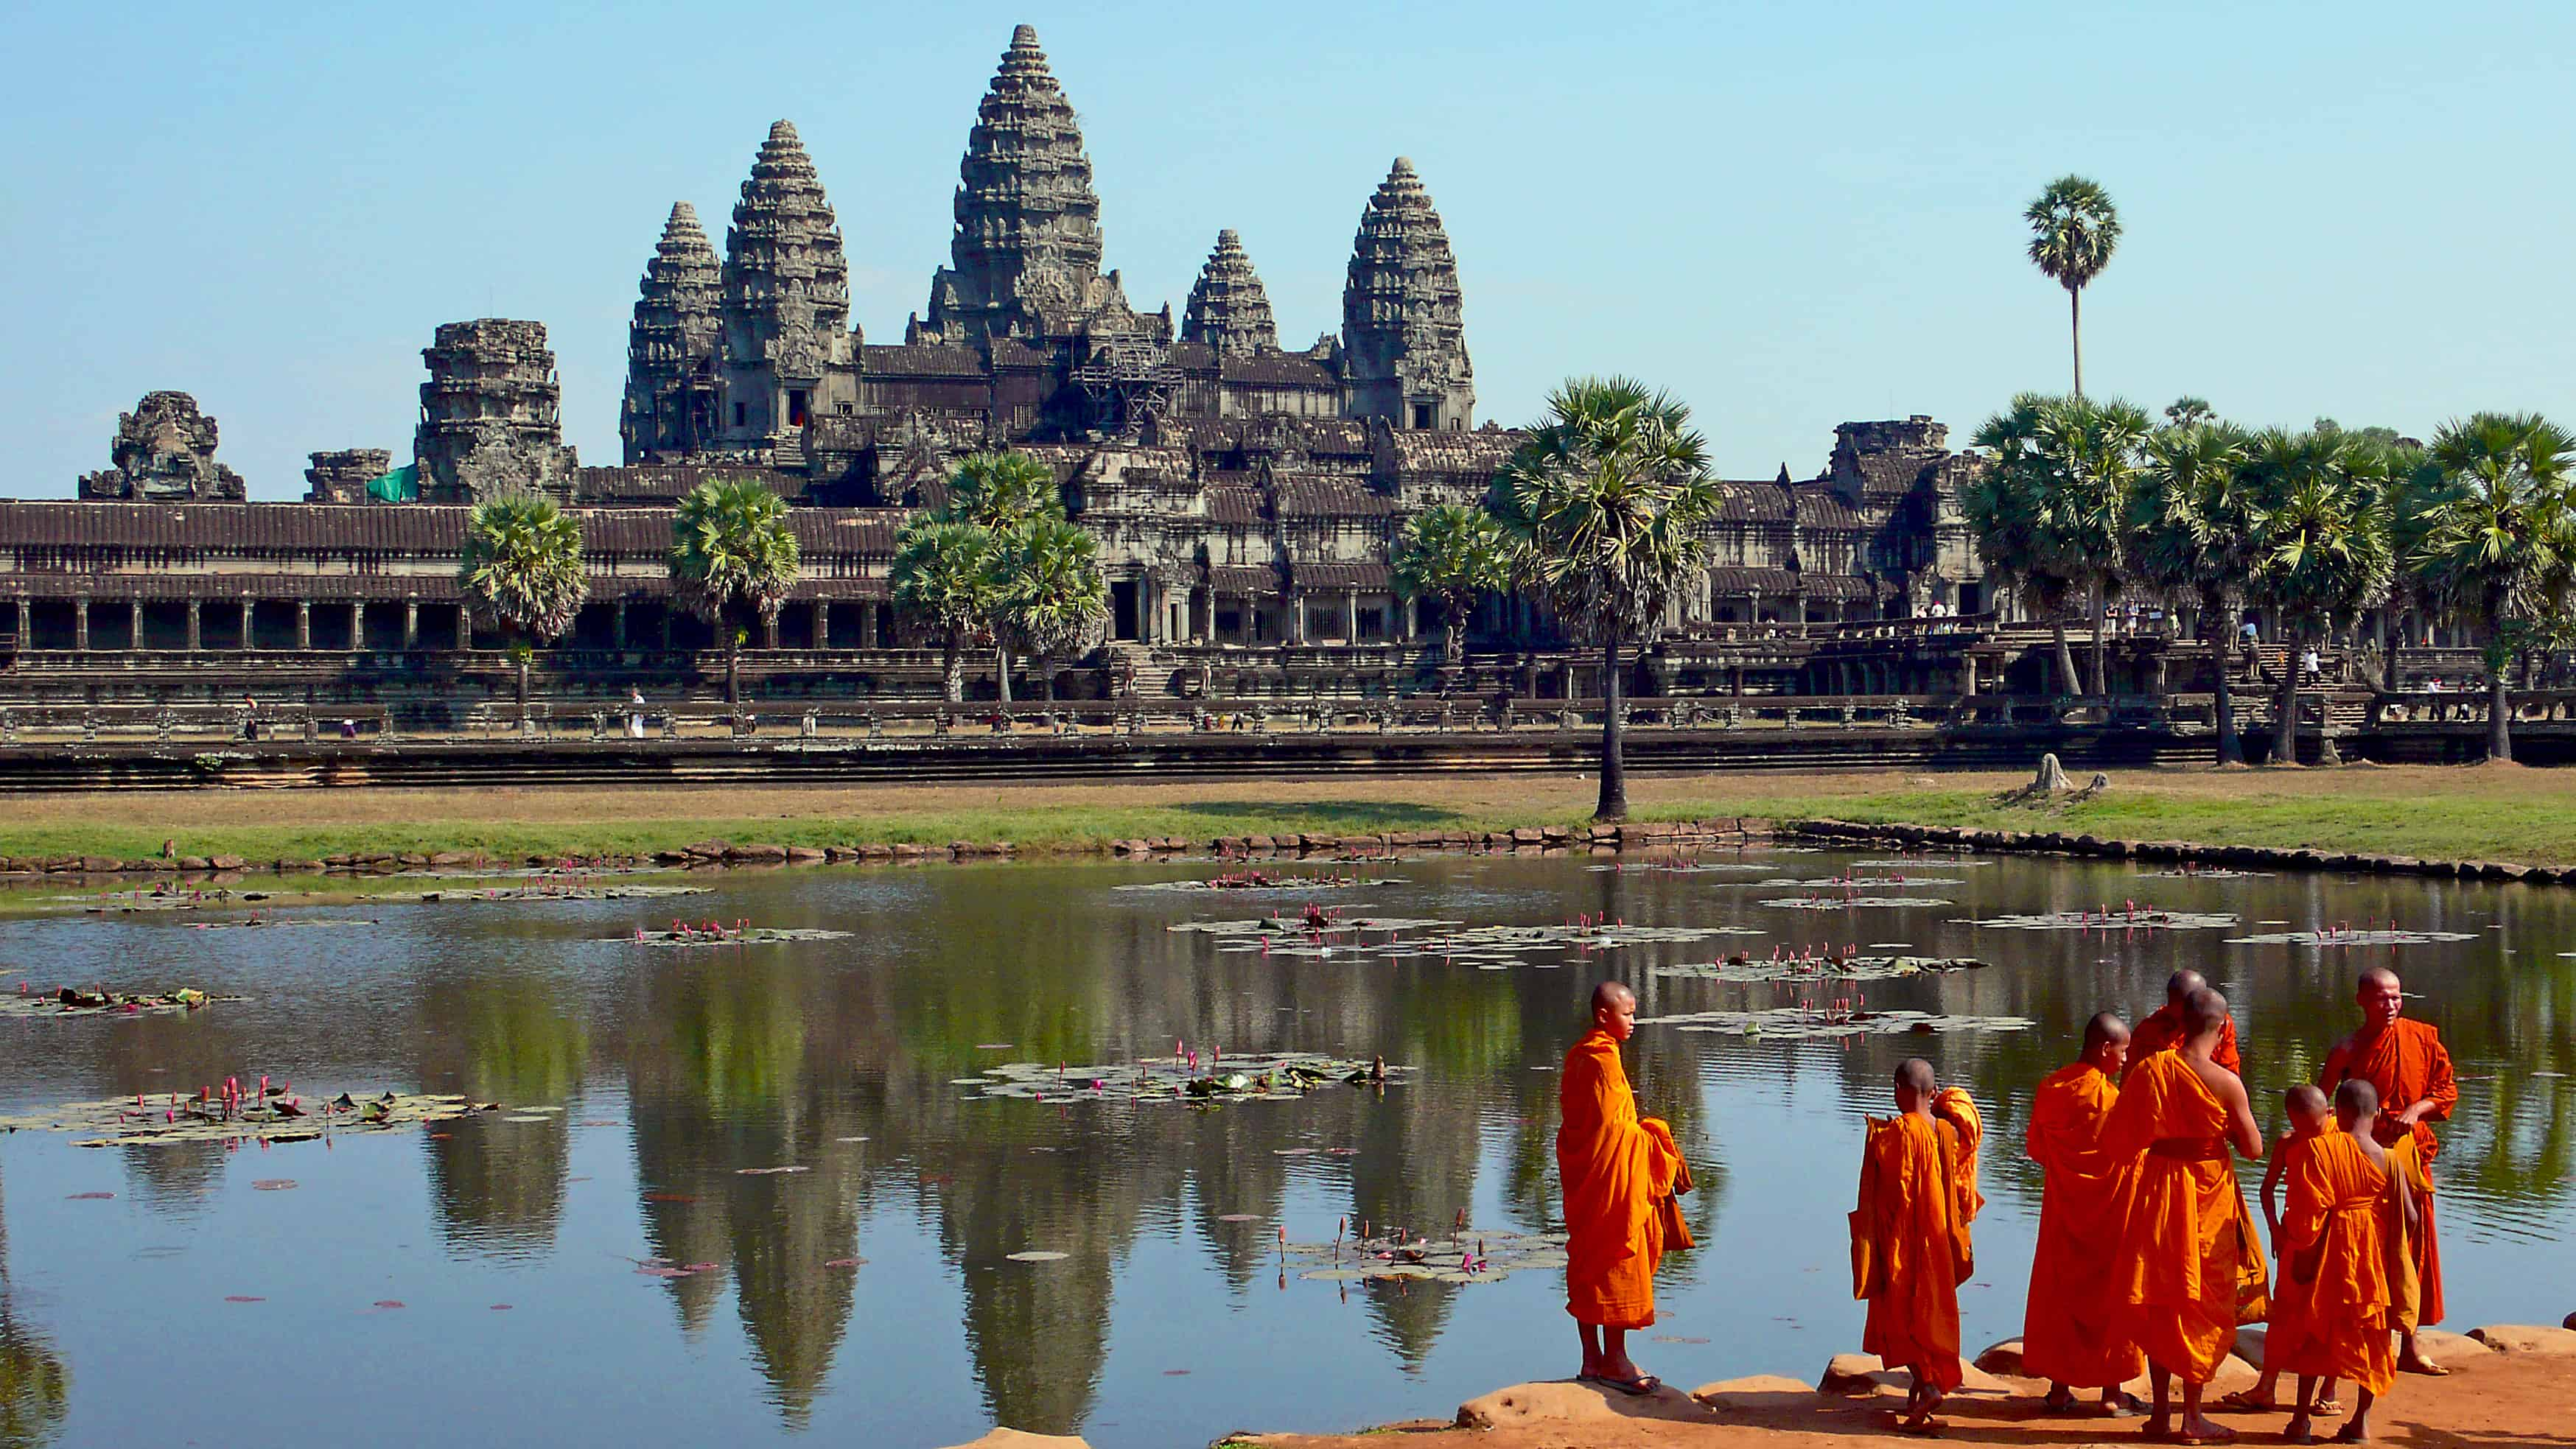 Angkor Wat, Siem Reap, Cambodia - Best Temples in Asia